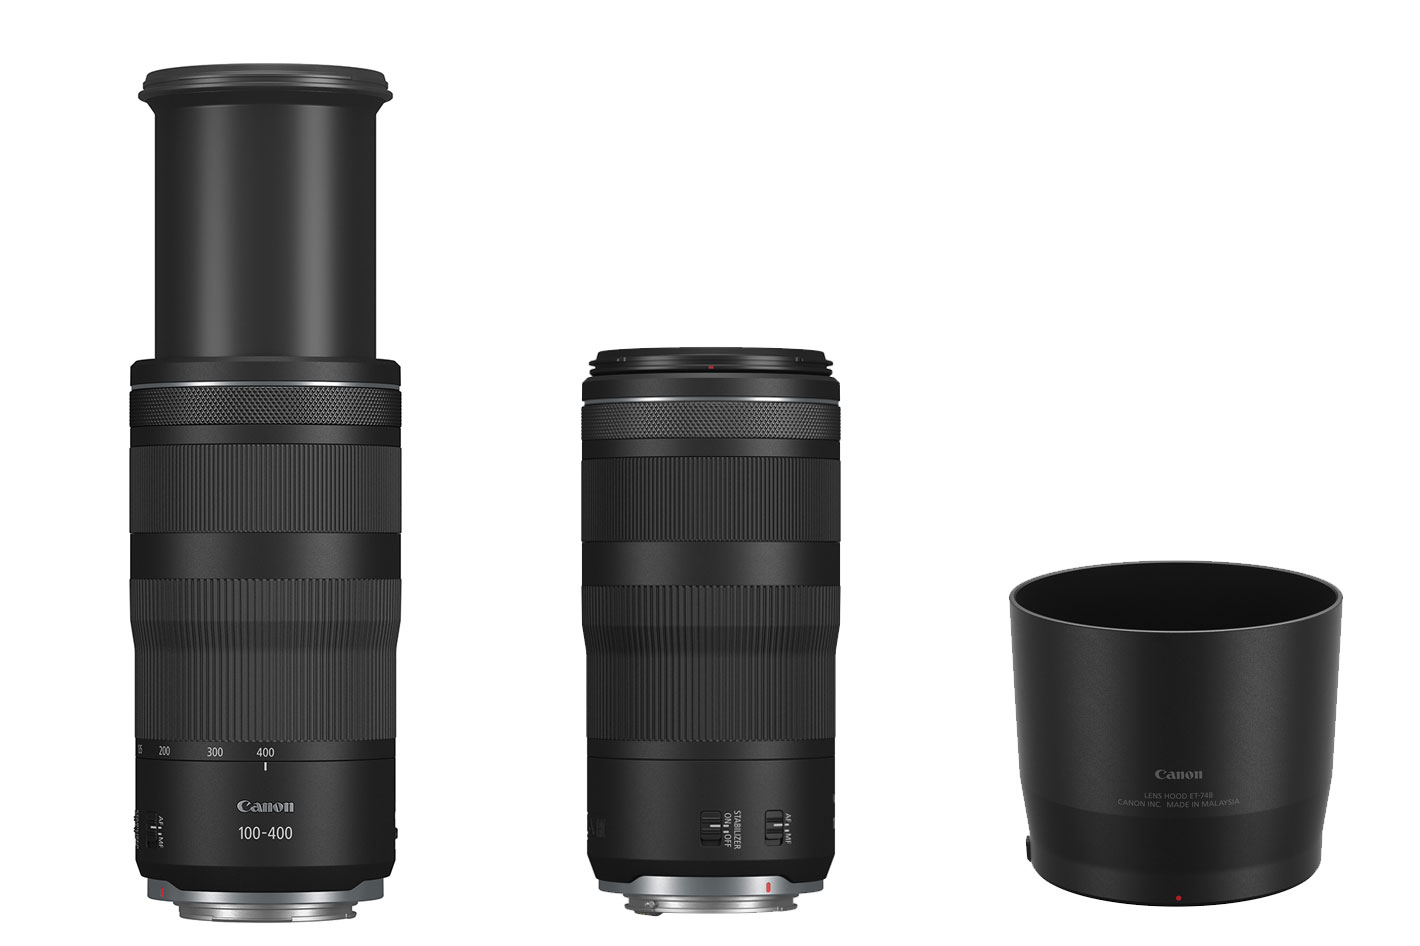 Canon's new RF lenses: a 16mm F2.8 and 100-400mm F5.6-8